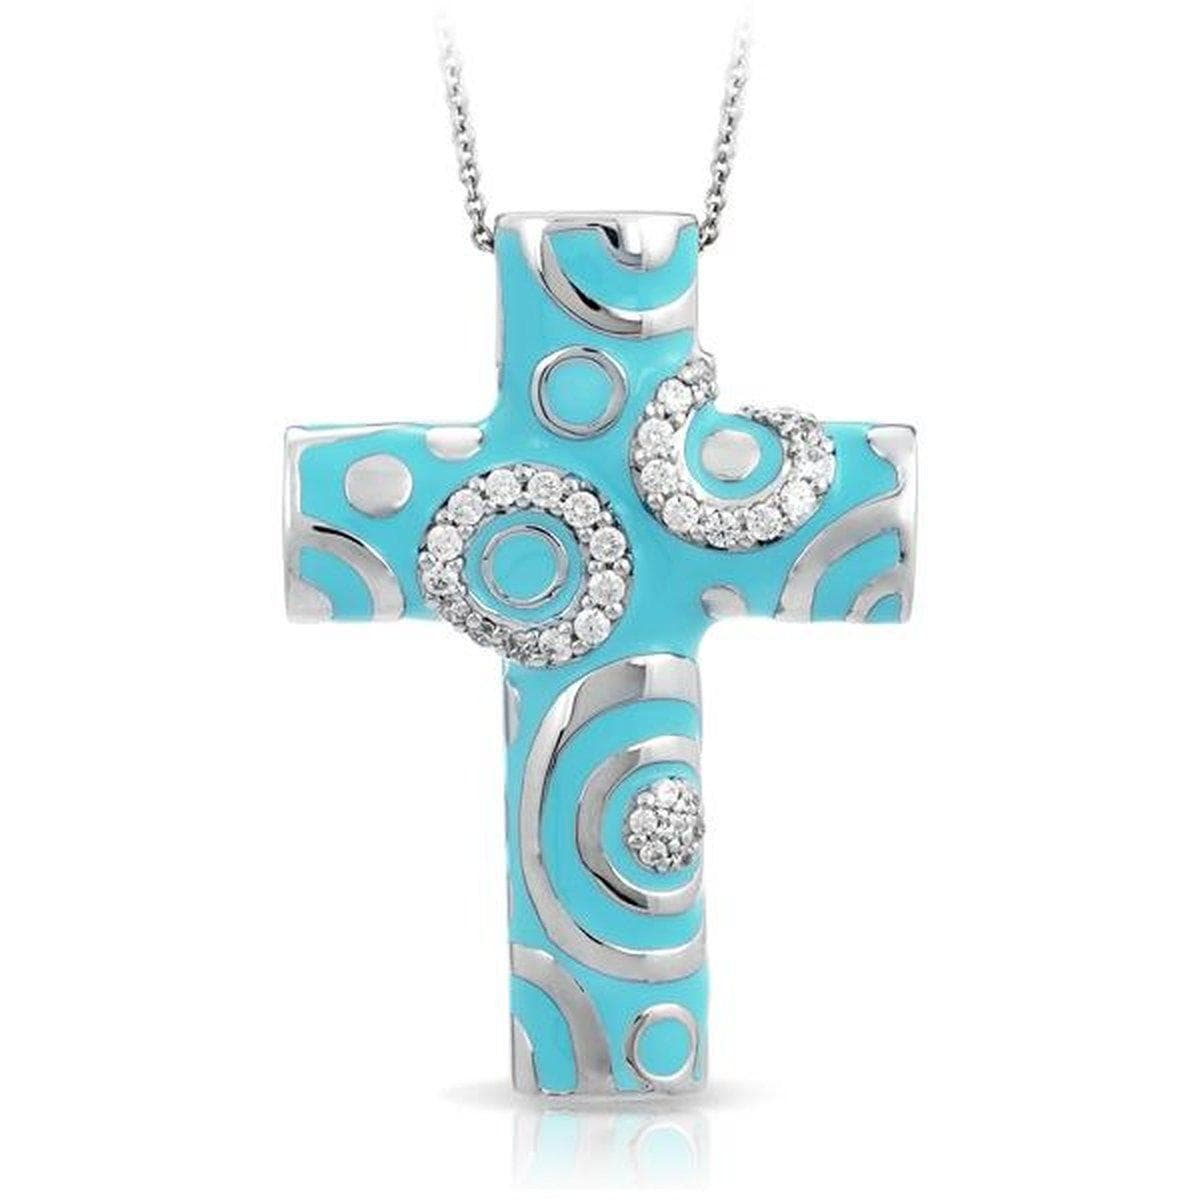 Galaxy turquoise cross pendant belle etoile belle etoile galaxy turquoise cross pendant aloadofball Image collections